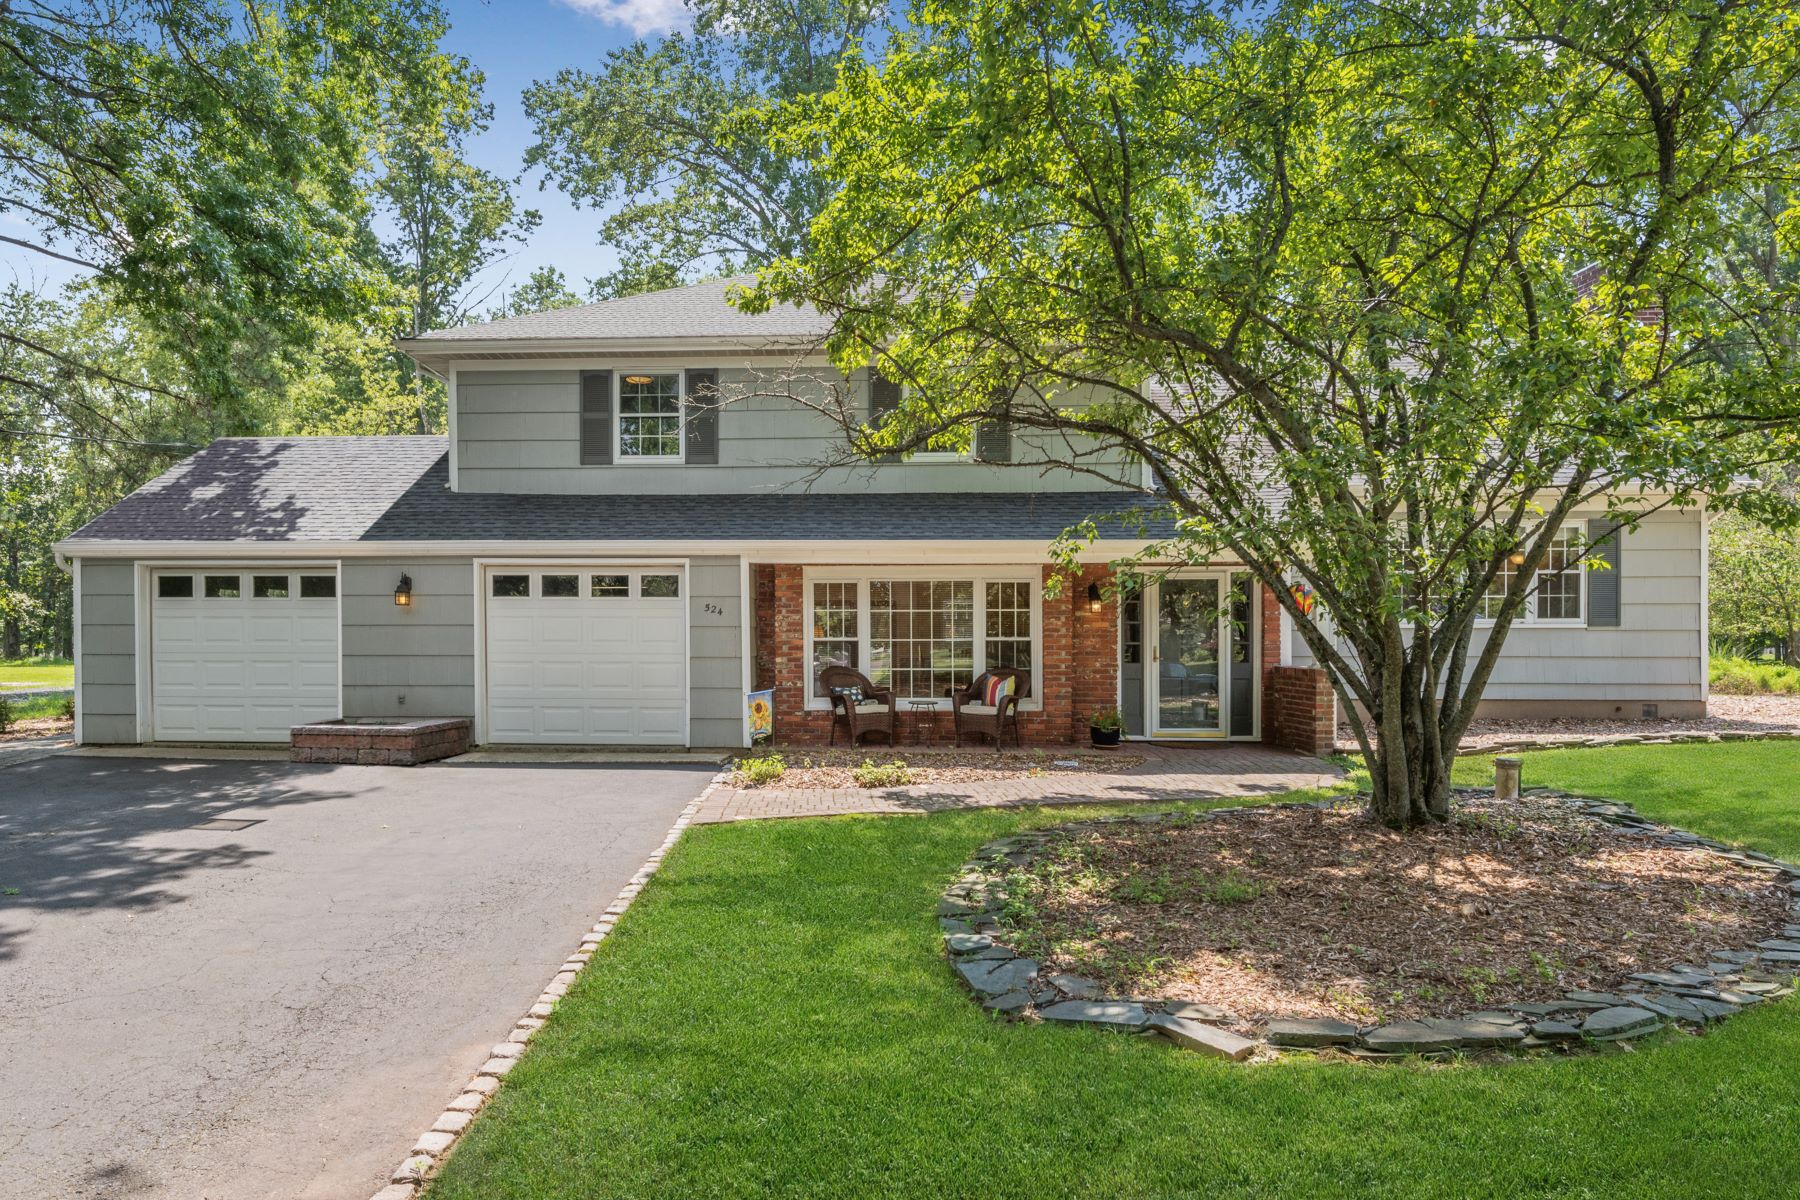 Single Family Homes for Sale at Spacious and Private 524 Spring Valley Drive Bridgewater, New Jersey 08807 United States